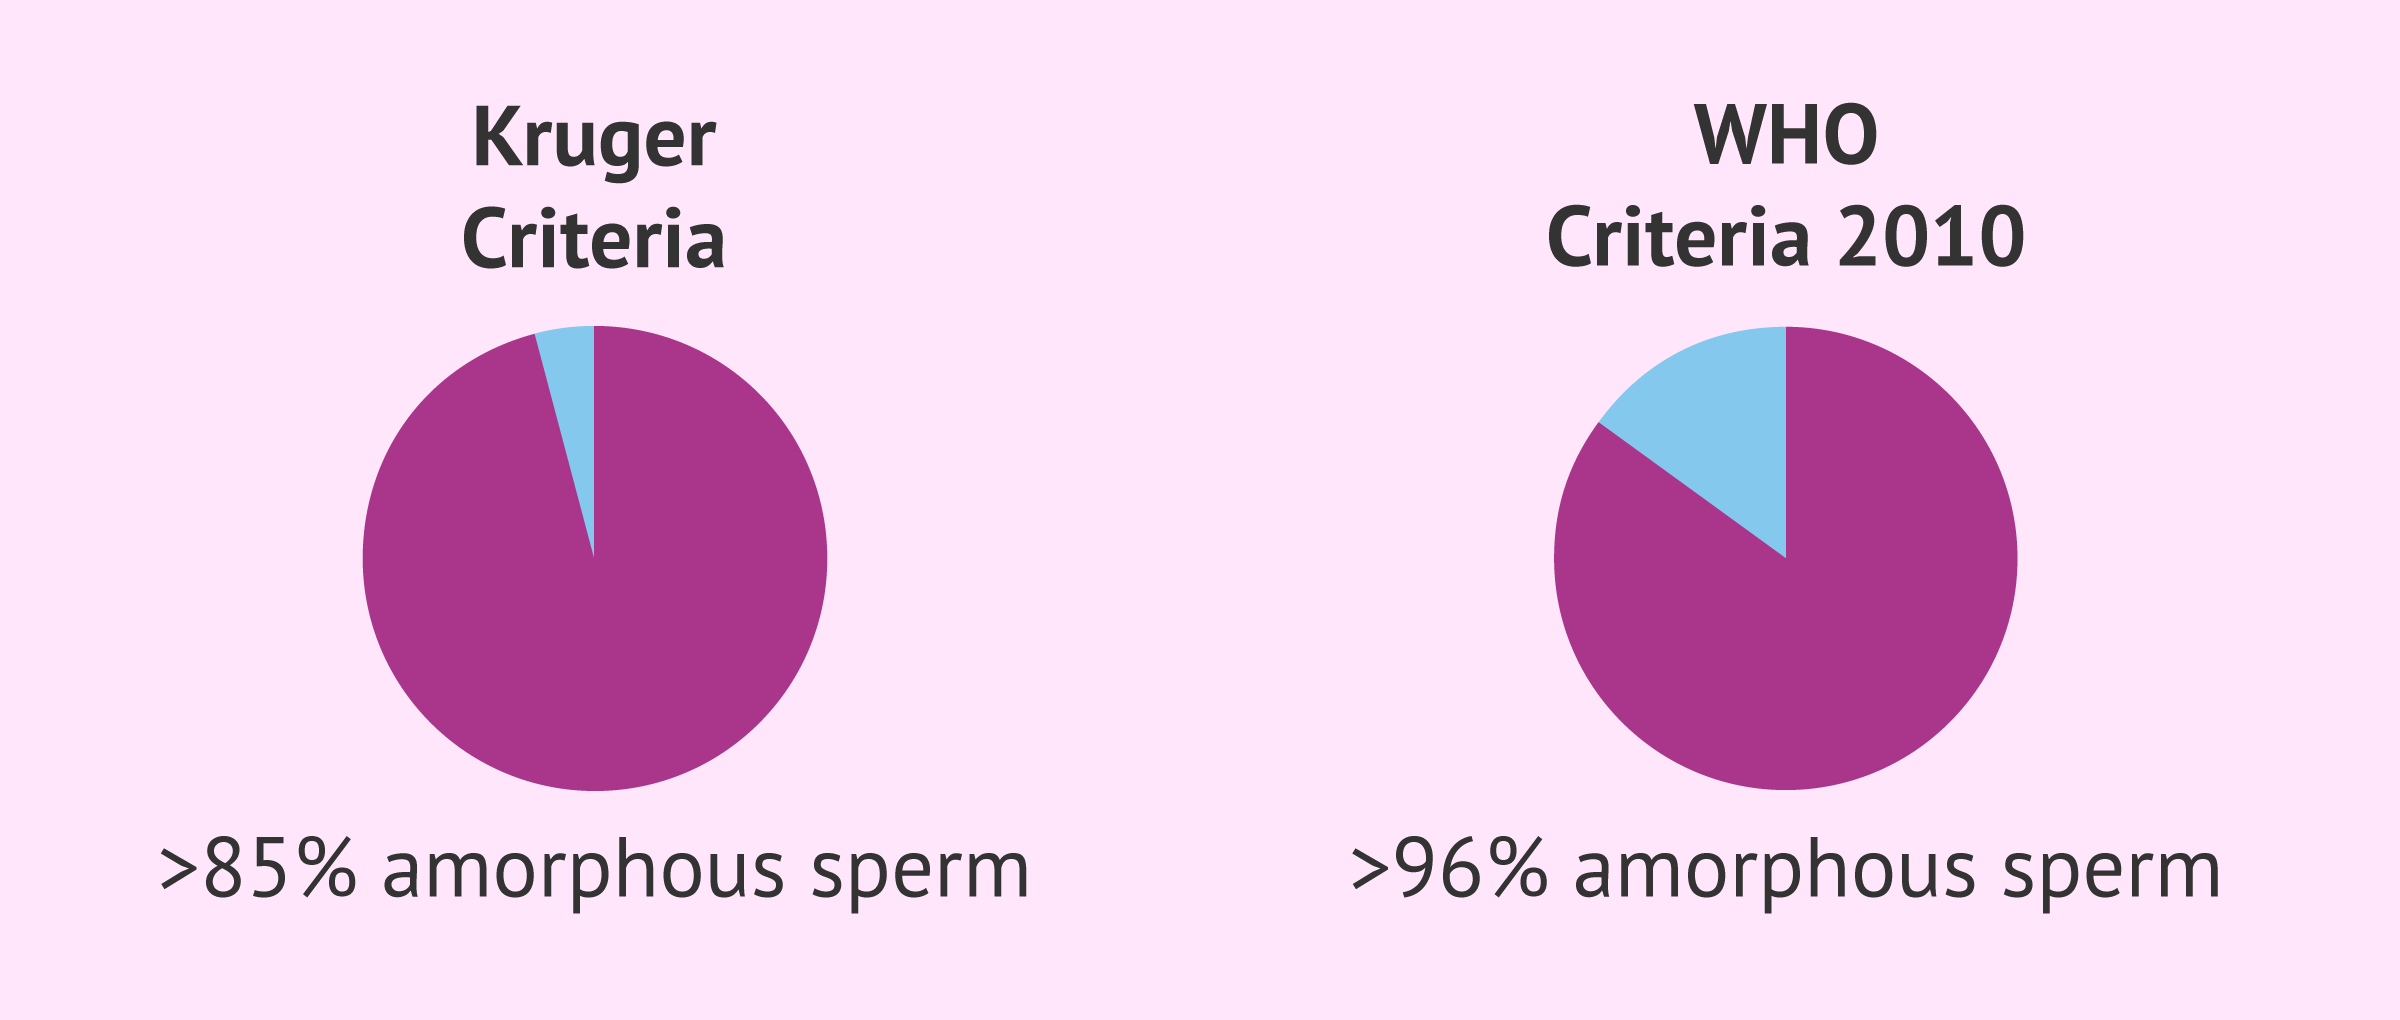 Teratozoospermia according to Kruger and WHO criteria